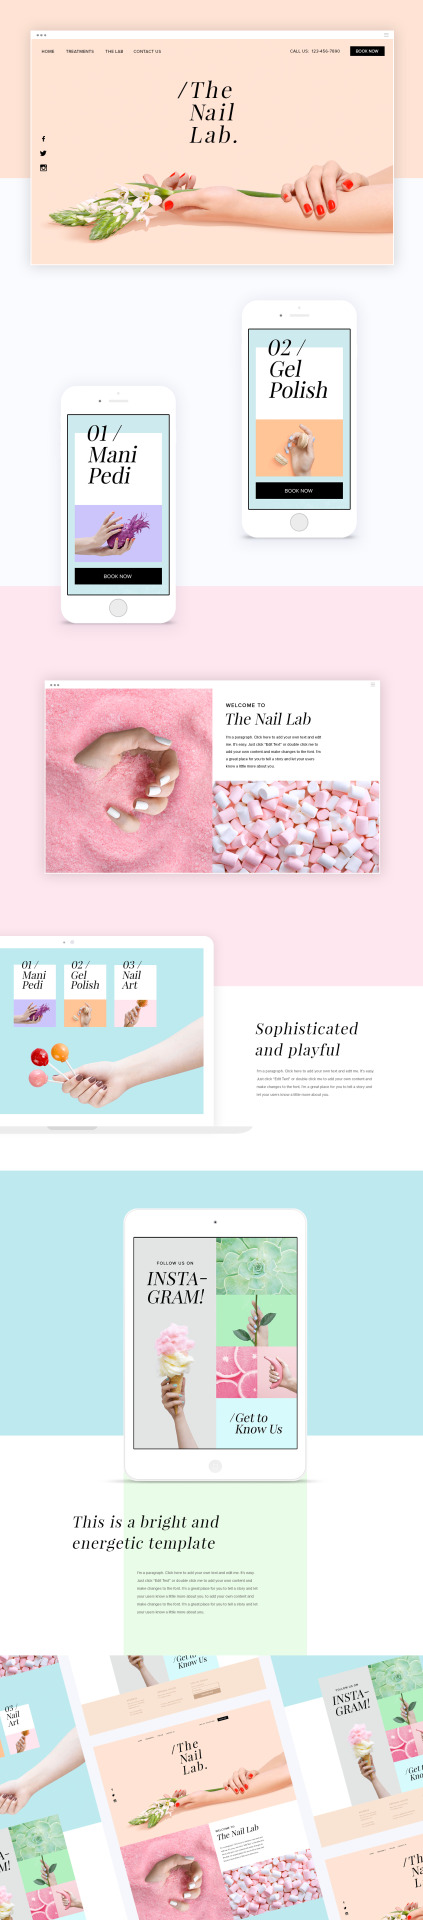 The Nail Lab by Wix Studio | Book cover | Pinterest | Nail lab ...